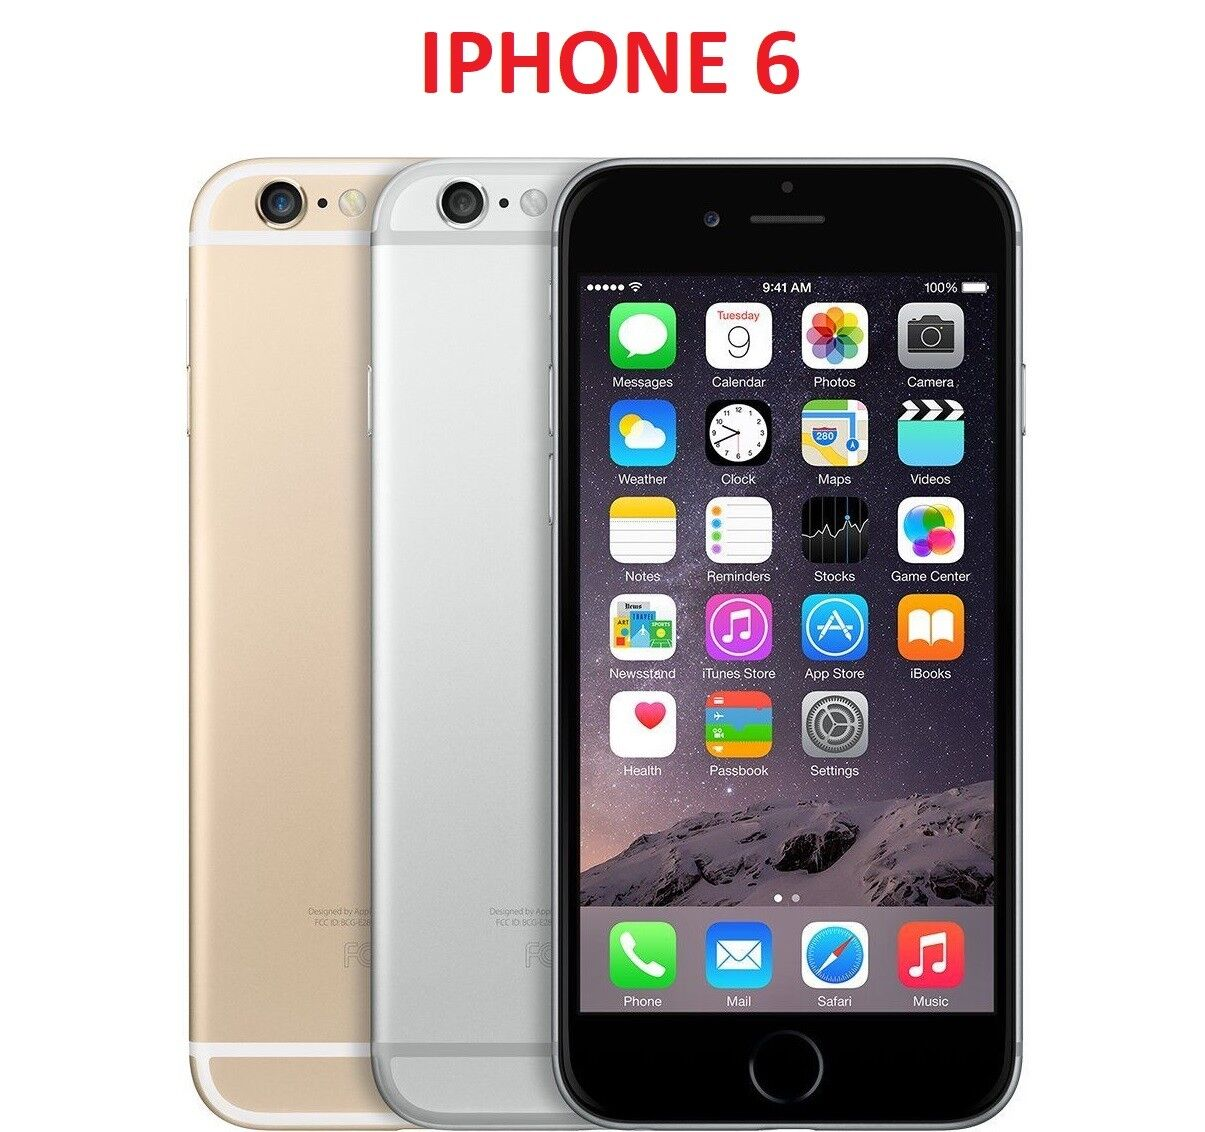 $209.97 - Apple iPhone 6-16GB 64GB 128GB *(AT&T)* Smartphone Gold Gray Silver Cell Phone